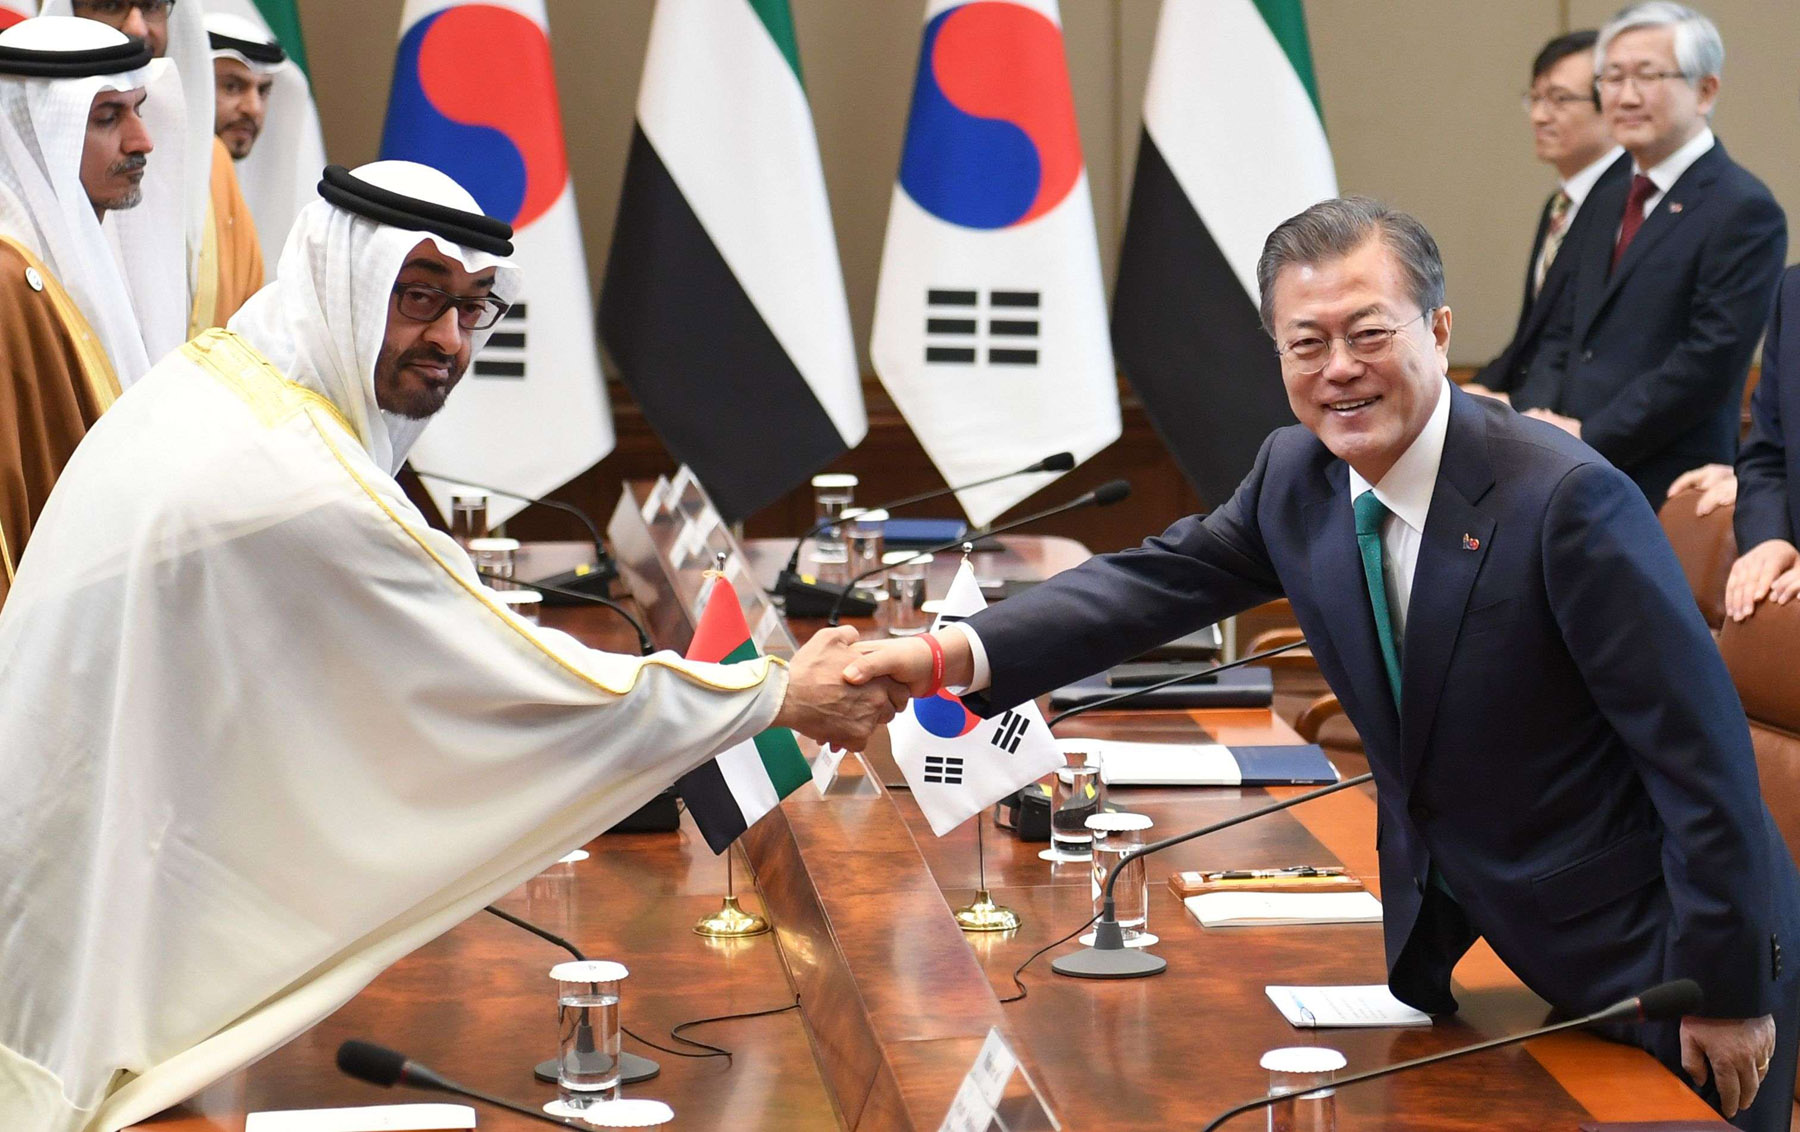 South Korean President Moon Jae-in (R) shakes hands with Abu Dhabi Crown Prince Sheikh Mohammed bin Zayed al-Nahyan during a meeting in Seoul, February 27. (AFP)